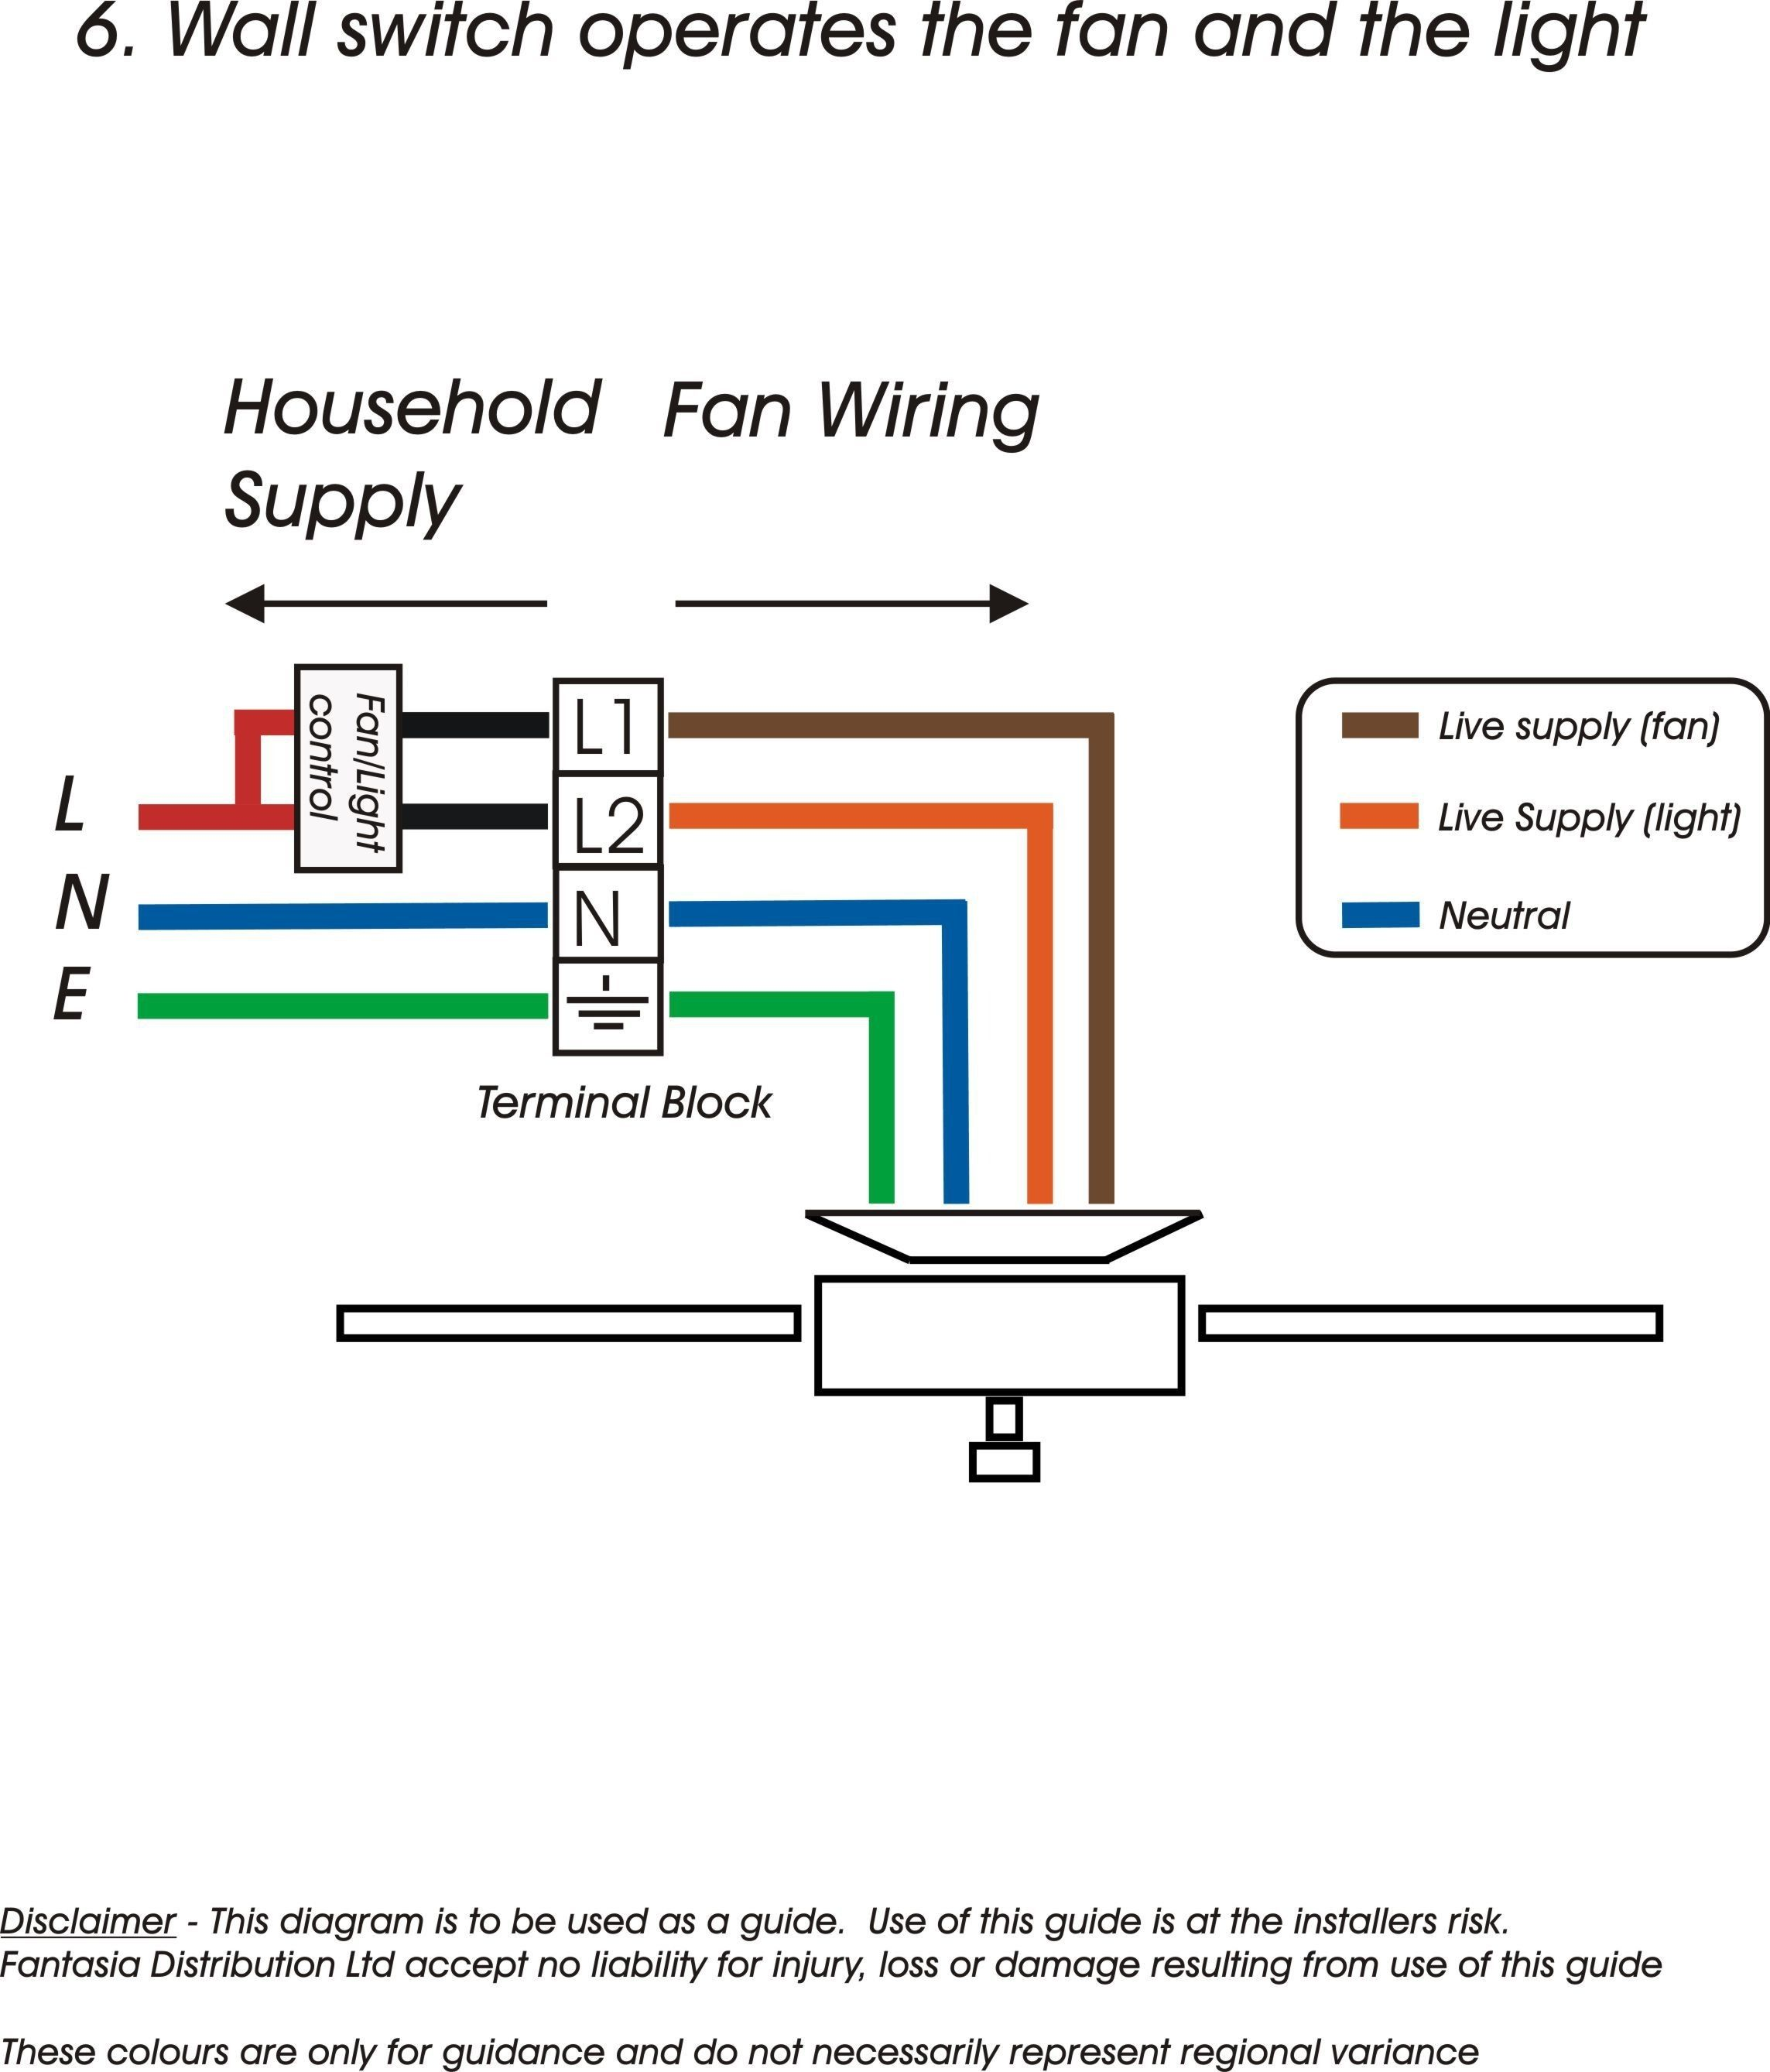 Electrical Loop Wiring Diagram | WiringDiagram.org